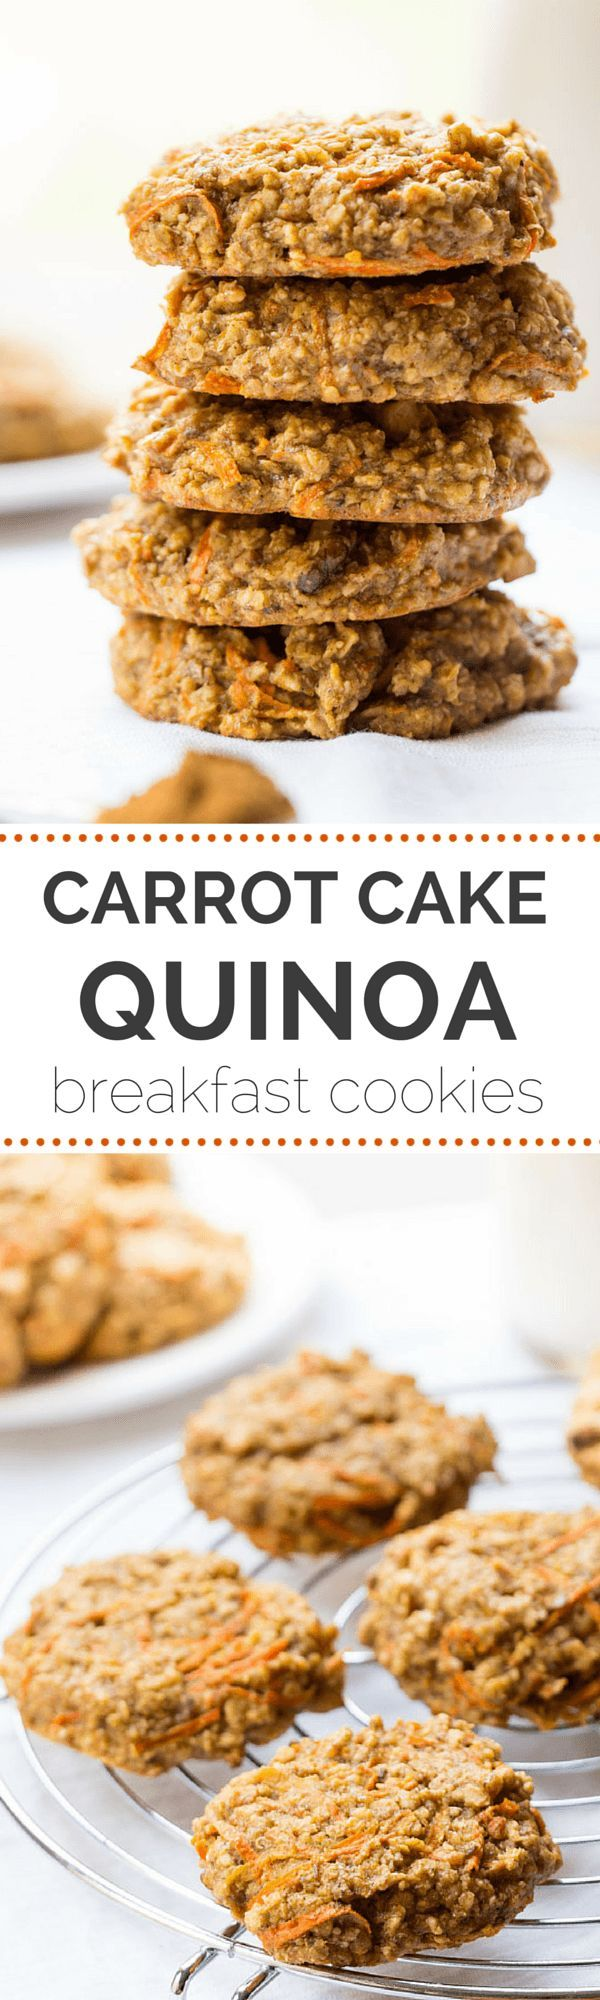 These AMAZING quinoa breakfast cookies taste just like carrot cake but are actually HEALTHY   gluten-free + vegan